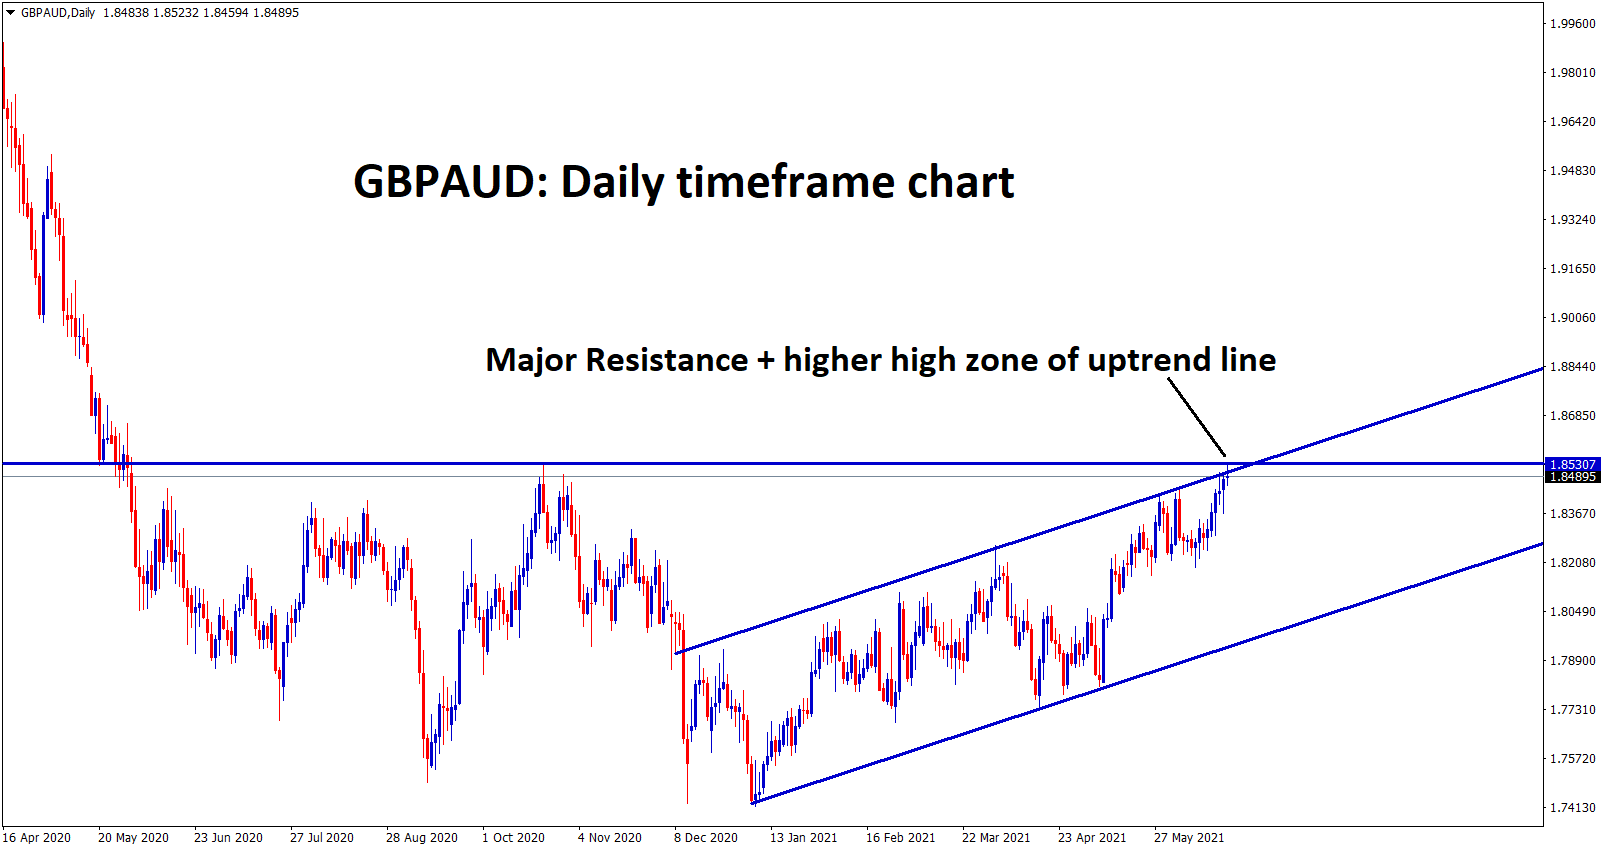 GBPAUD at the top resistance level and higher high zone in the daily chart